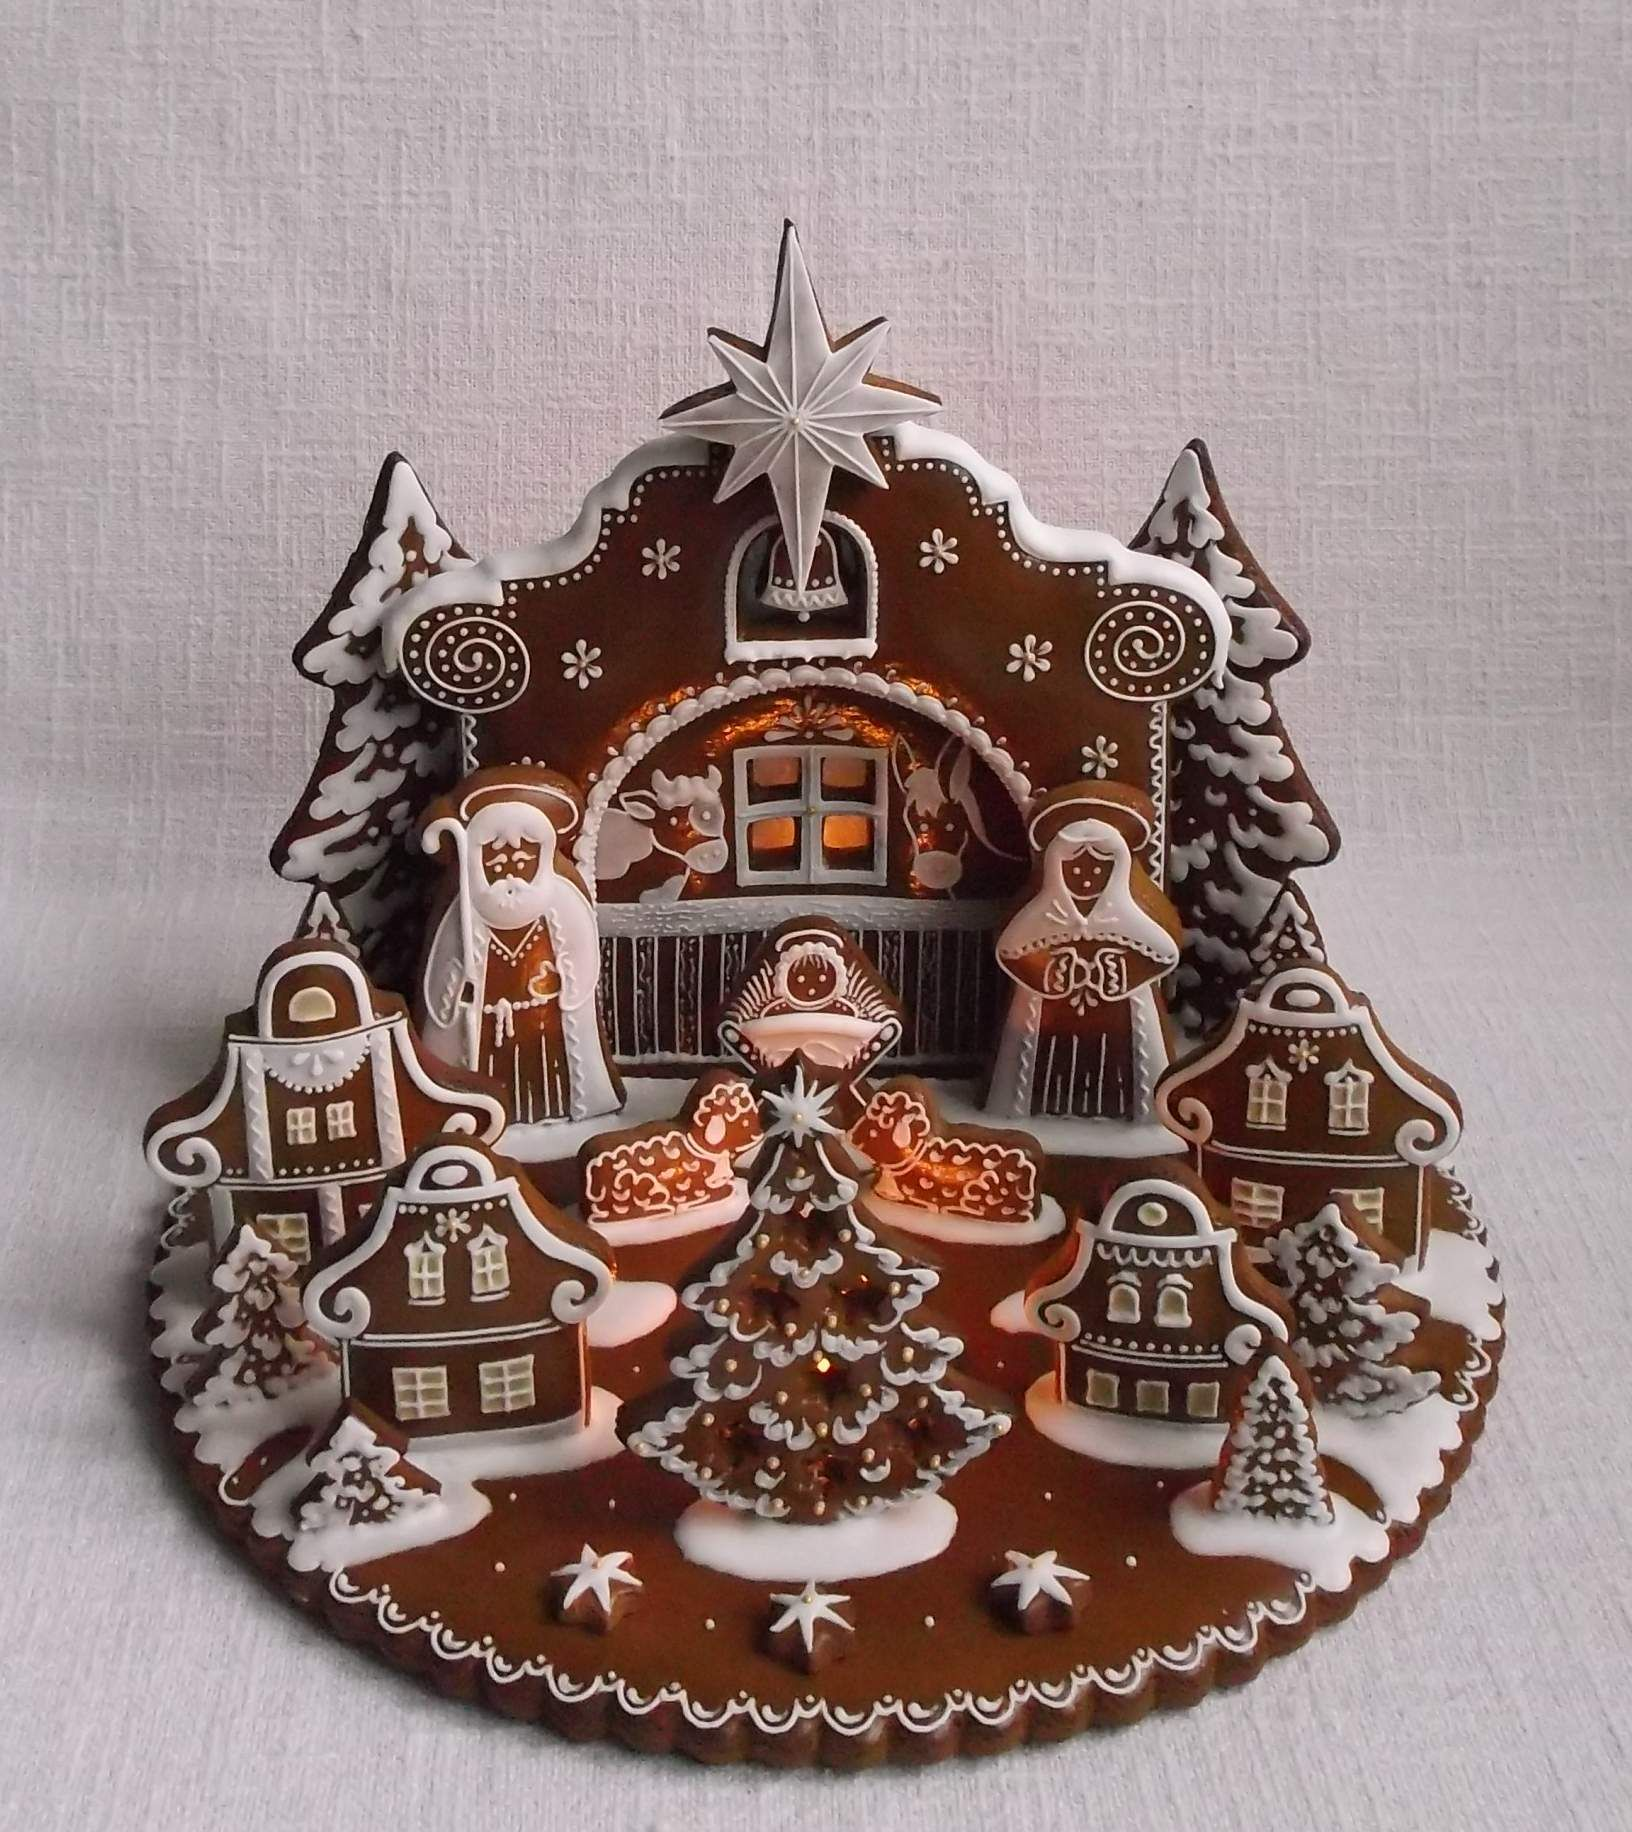 Pin on gingerbread houses